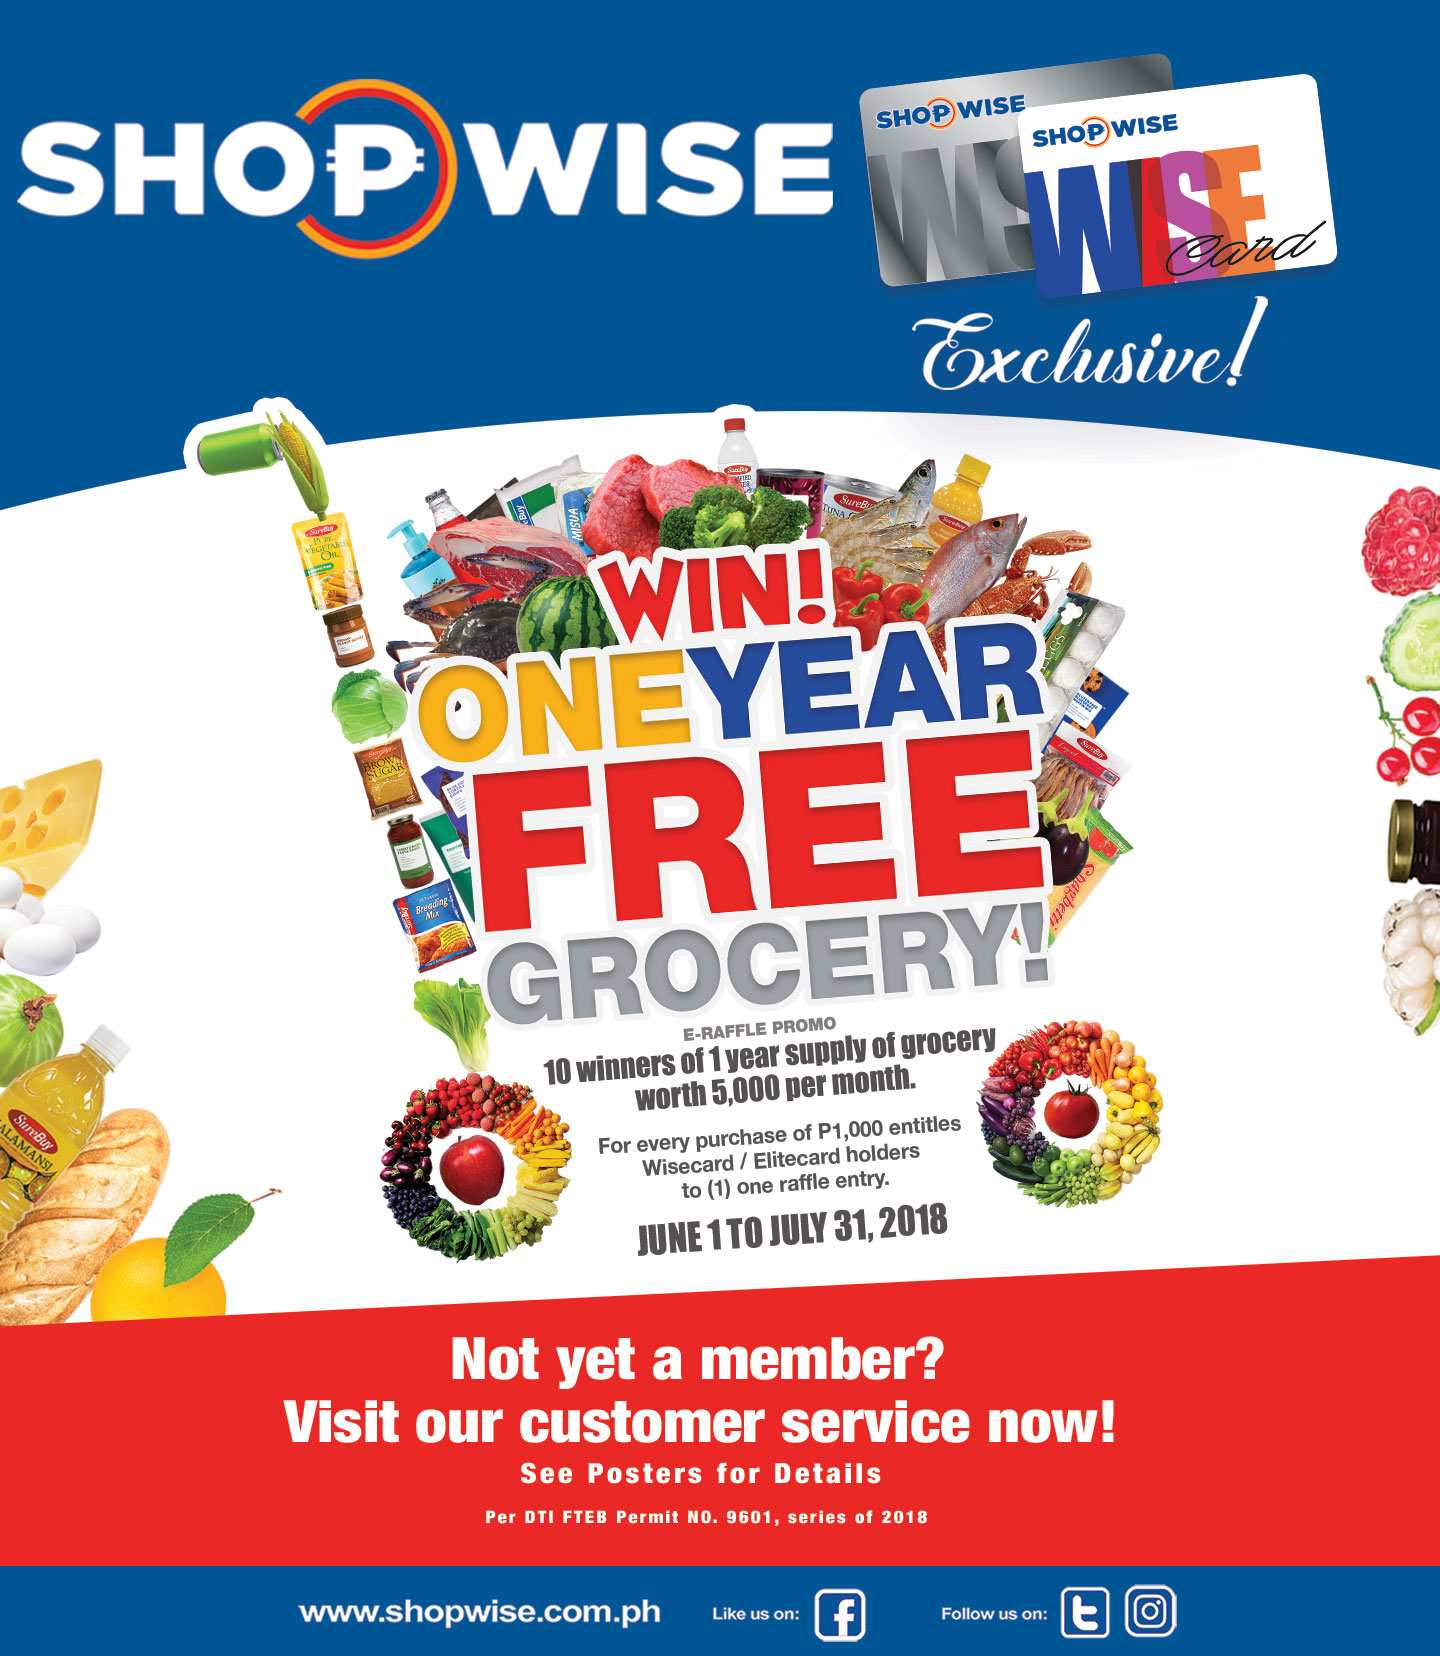 Win One Year Free Grocery!!! - WISE CARD EXCLUSIVE! FREE GROCERIES FOR A YEAR FROM SHOPWISE? YES PLEASE! Be one of the 10 lucky Wise Card holders to win P5,000 worth of groceries for FREE for 1 YEAR! --- Click on the image for further details!